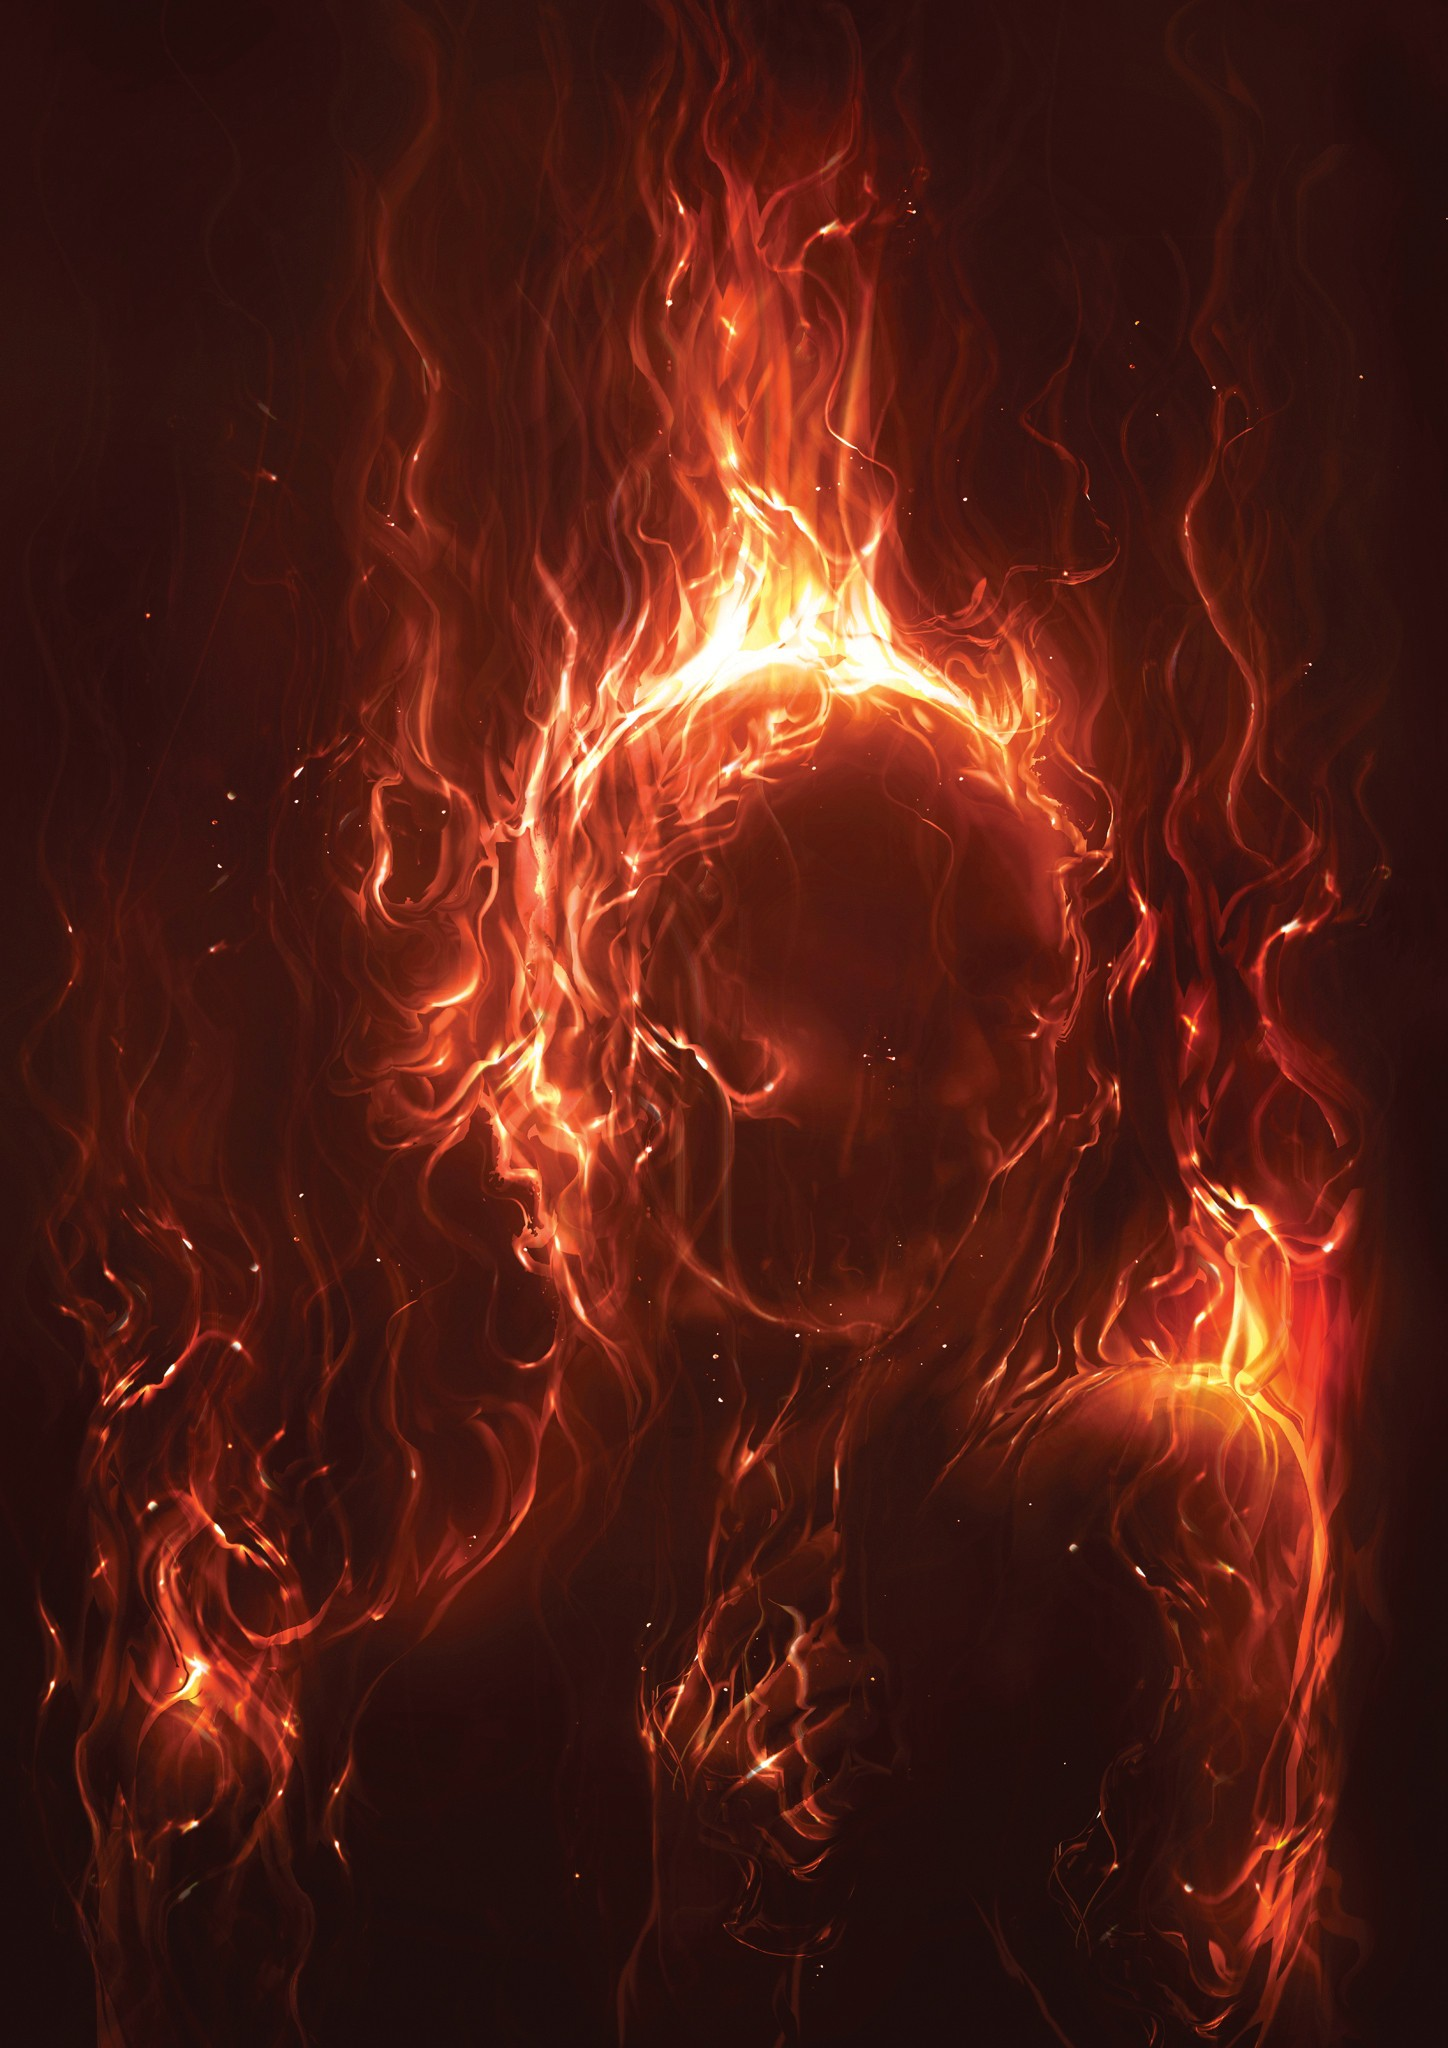 Photoshop tutorial: Paint with fire - Digital Arts